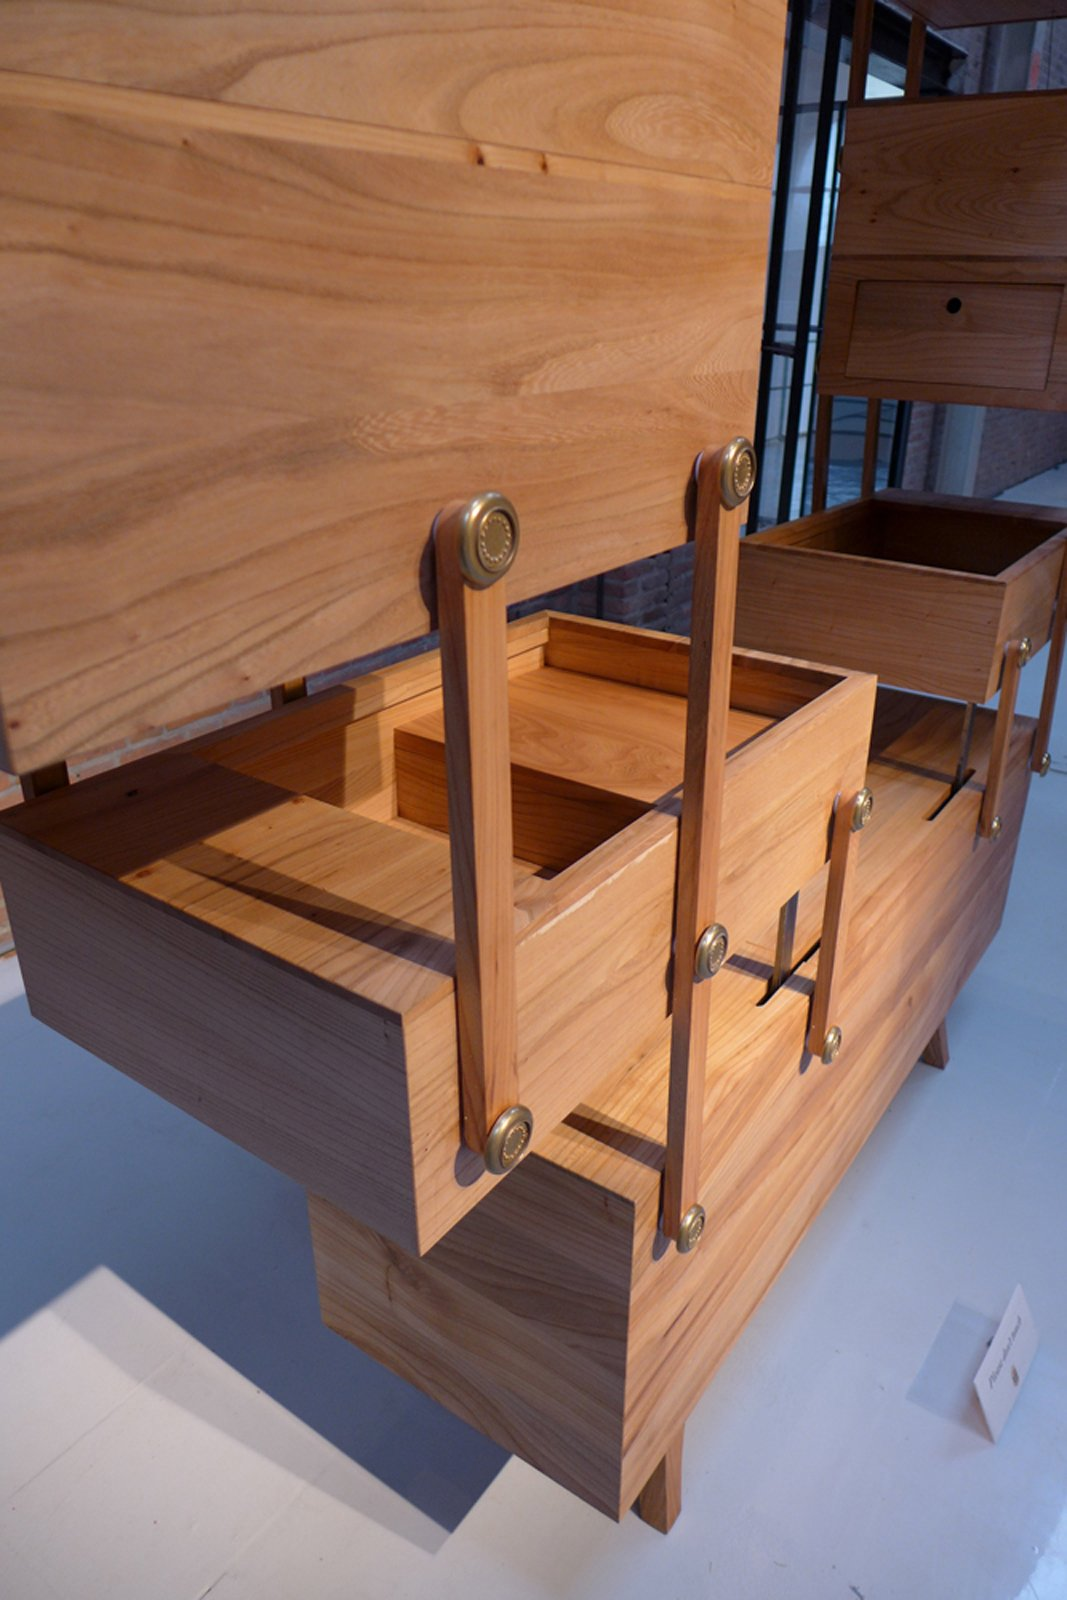 An interesting detail on this storage unit from Kiki van Eijk, which derives inspiration from a toolbox.  Dutch Design Week 2012, Pt. 2 by Maarten Dinger